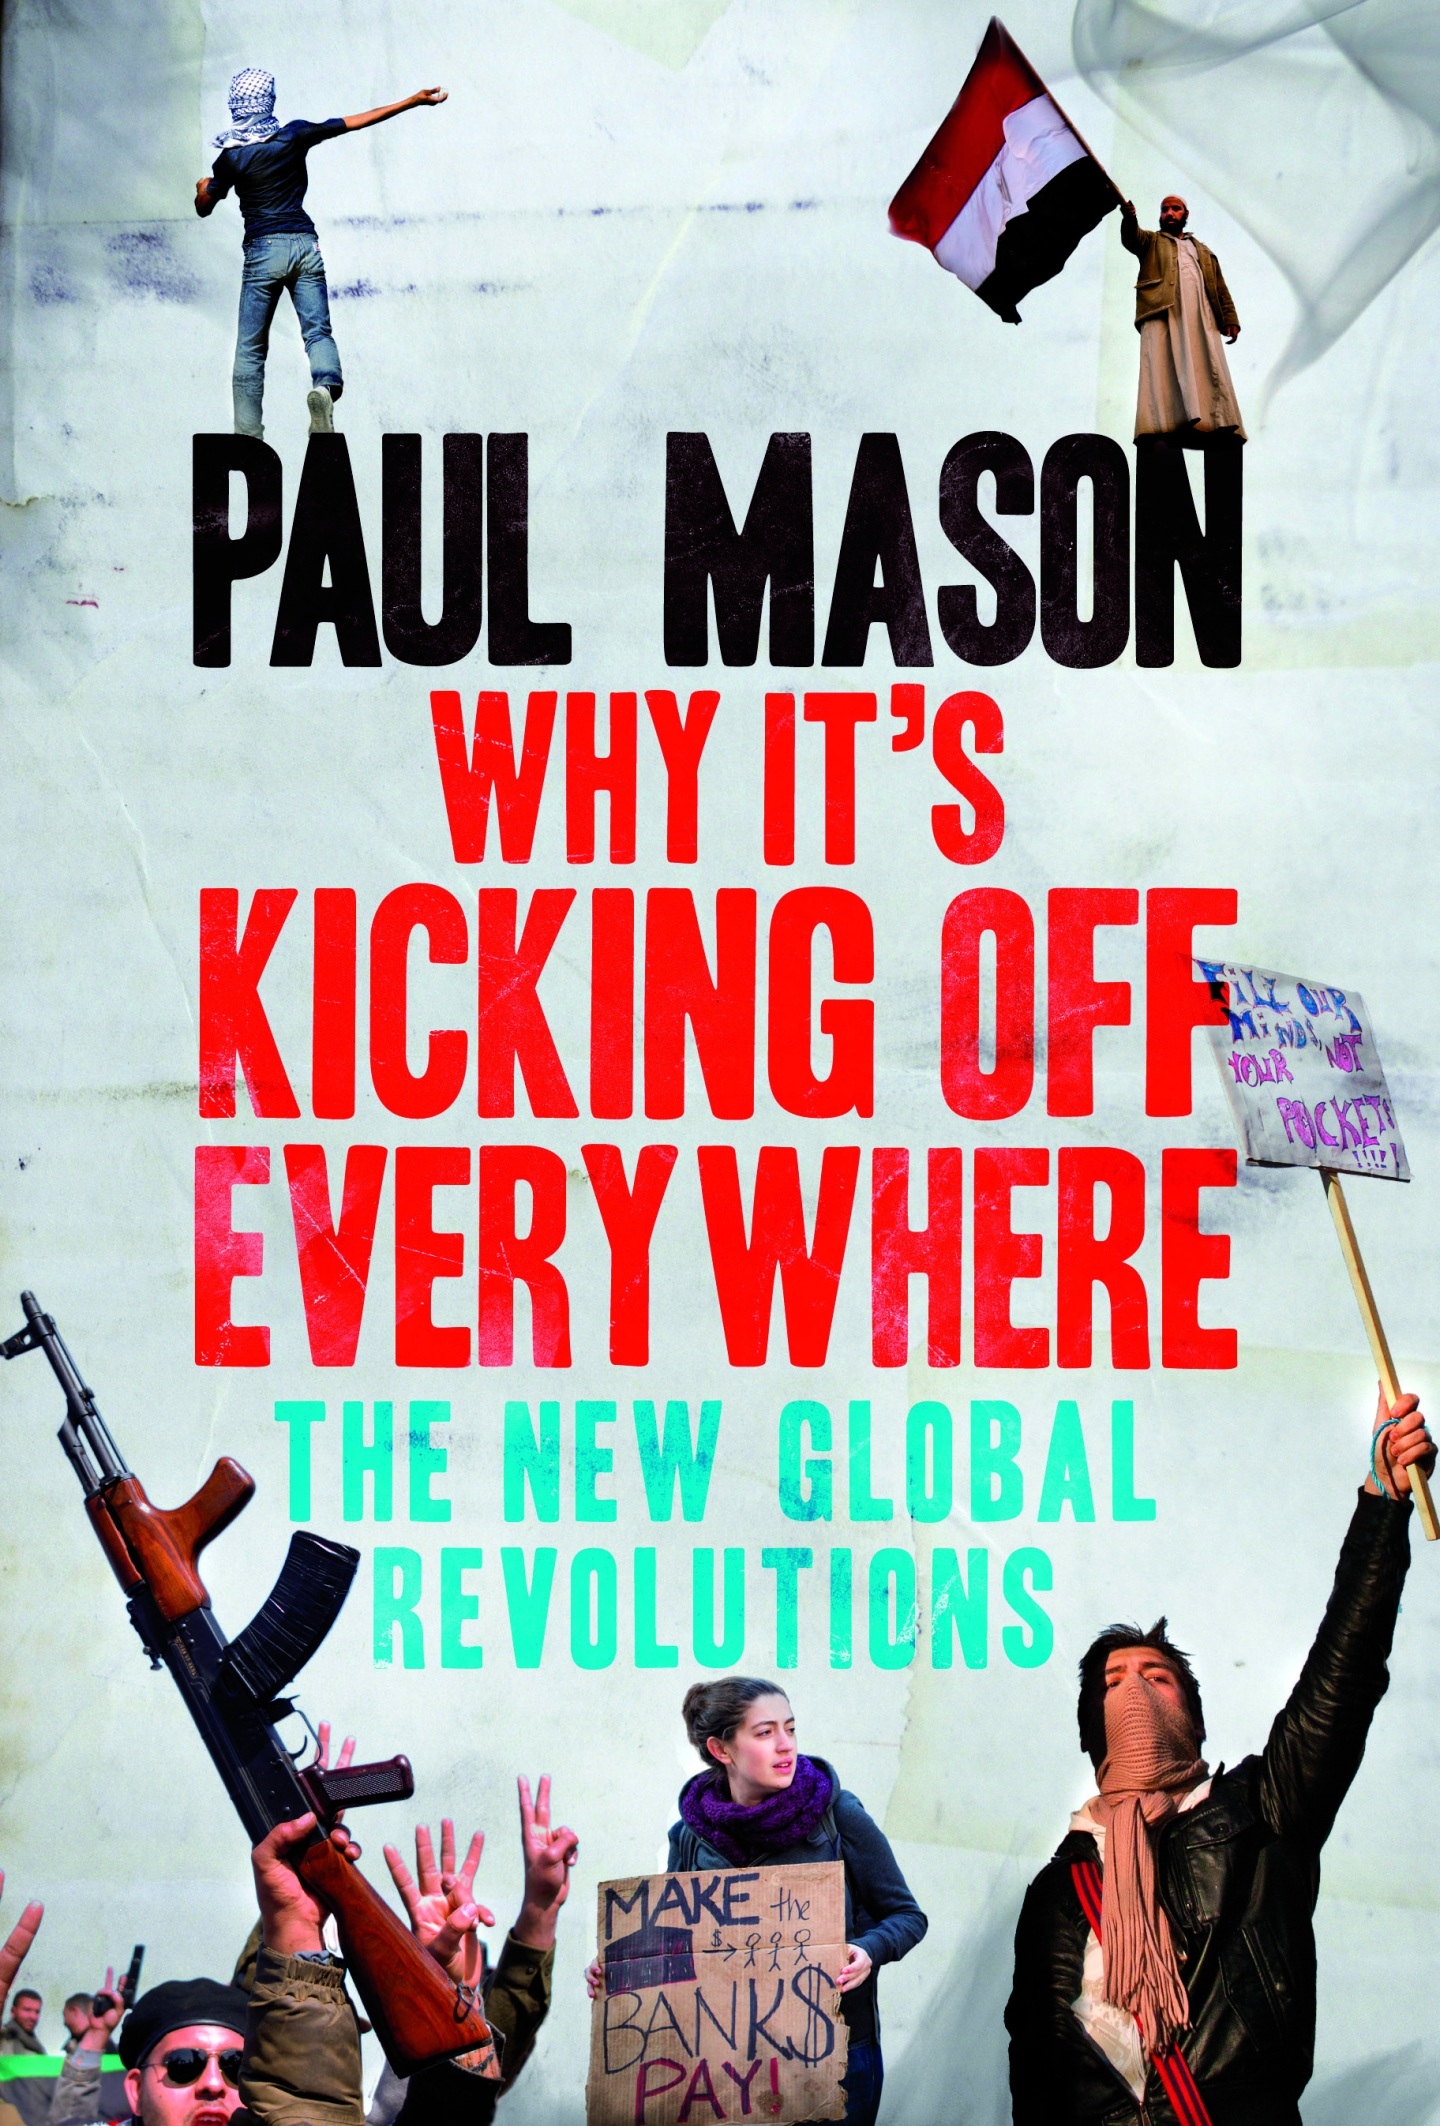 Paul Mason: The Global Revolutions, Social Networking & The Demonisation of Arabs